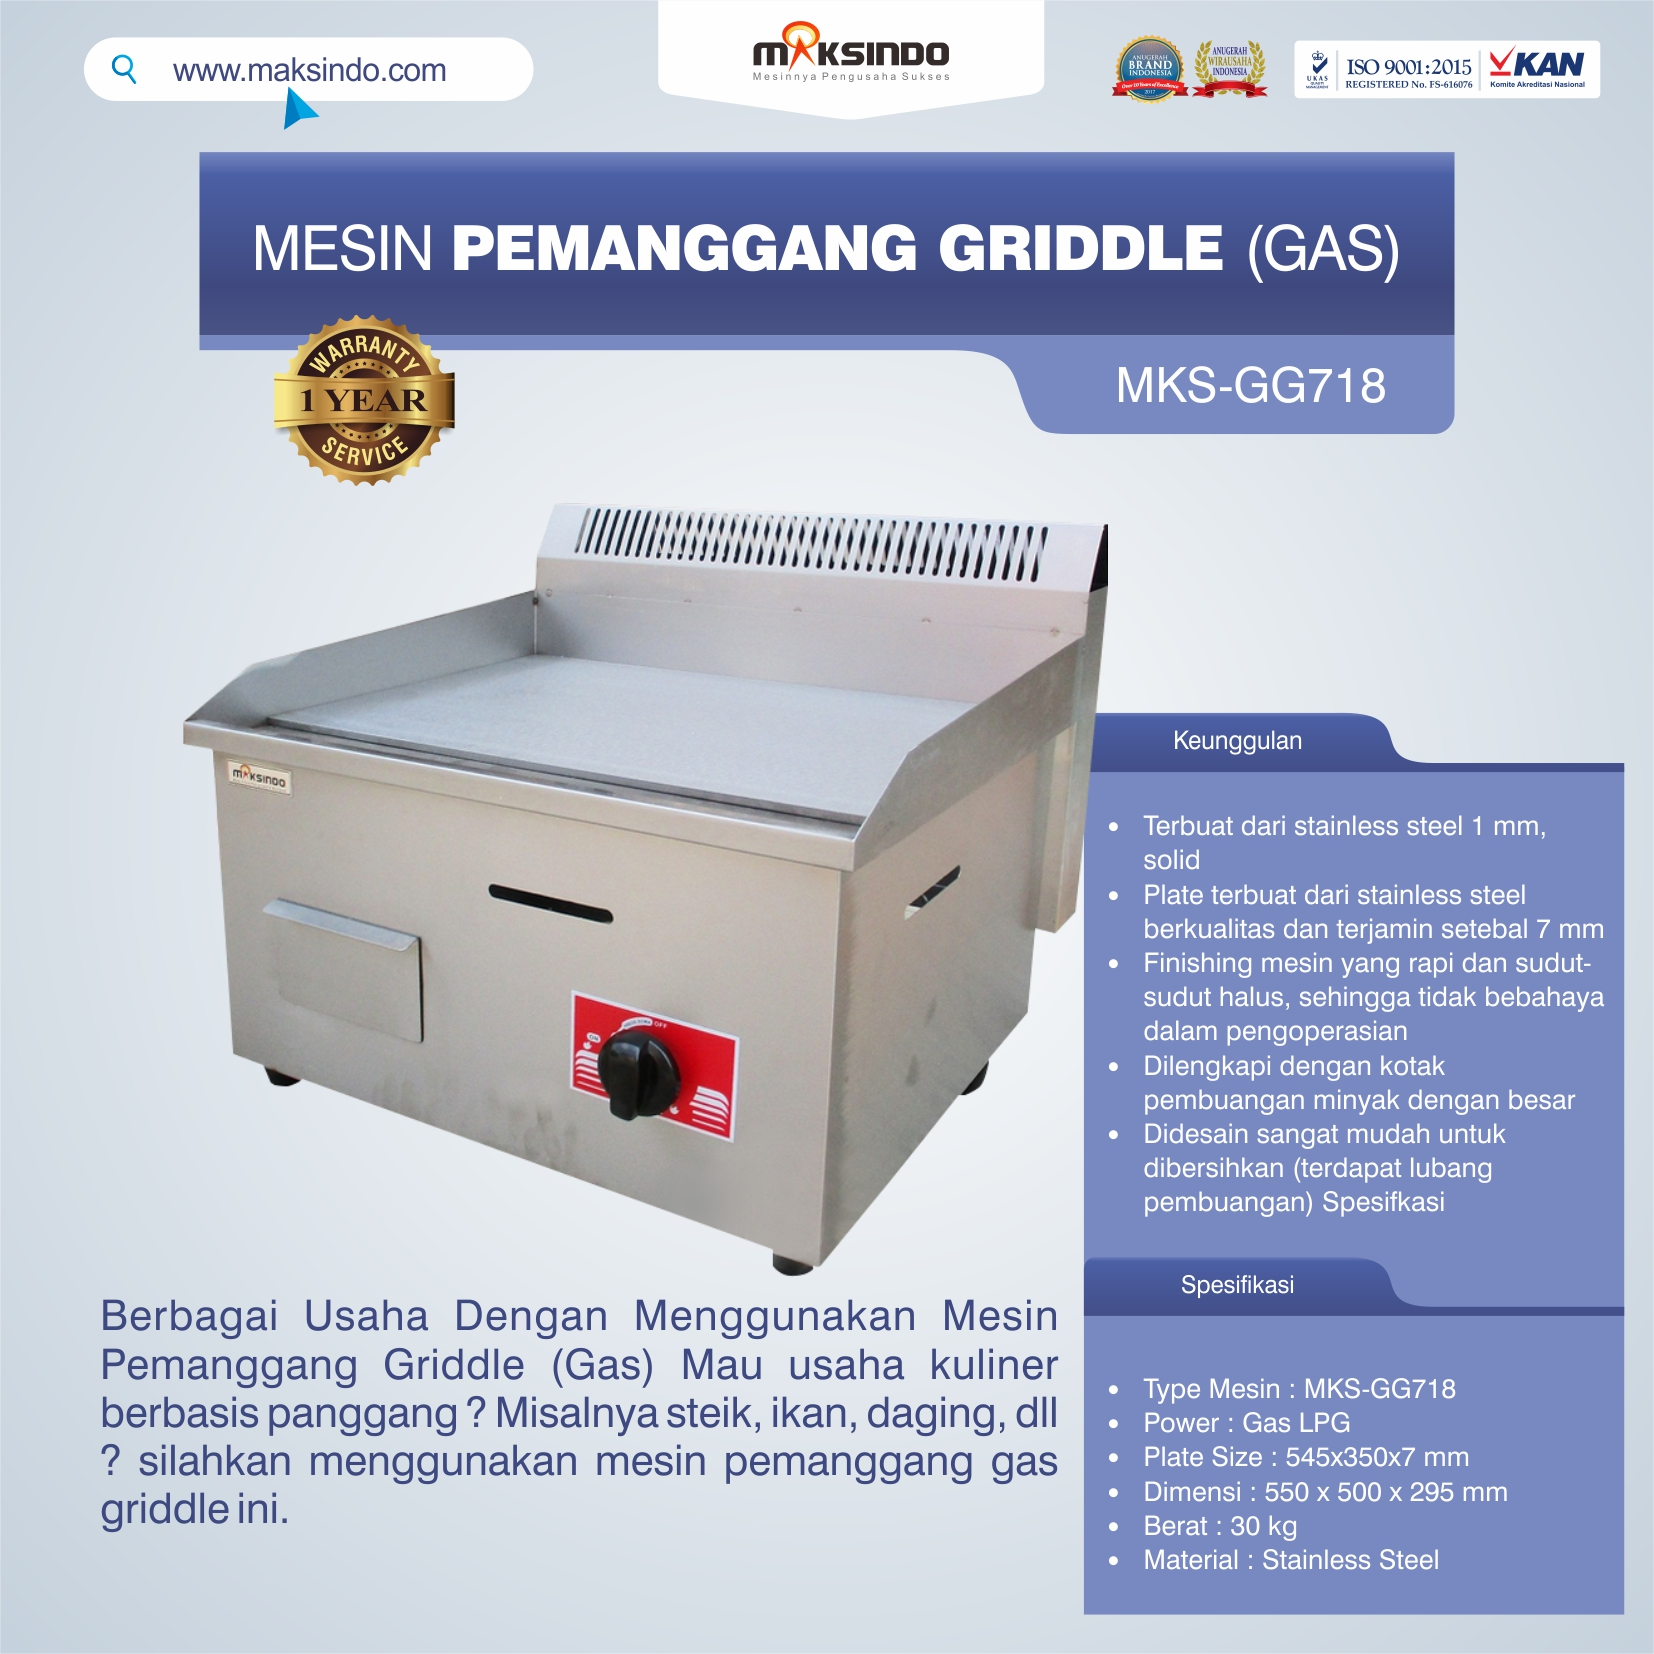 MKS-GG718 Mesin Pemanggang Griddle (GAS)